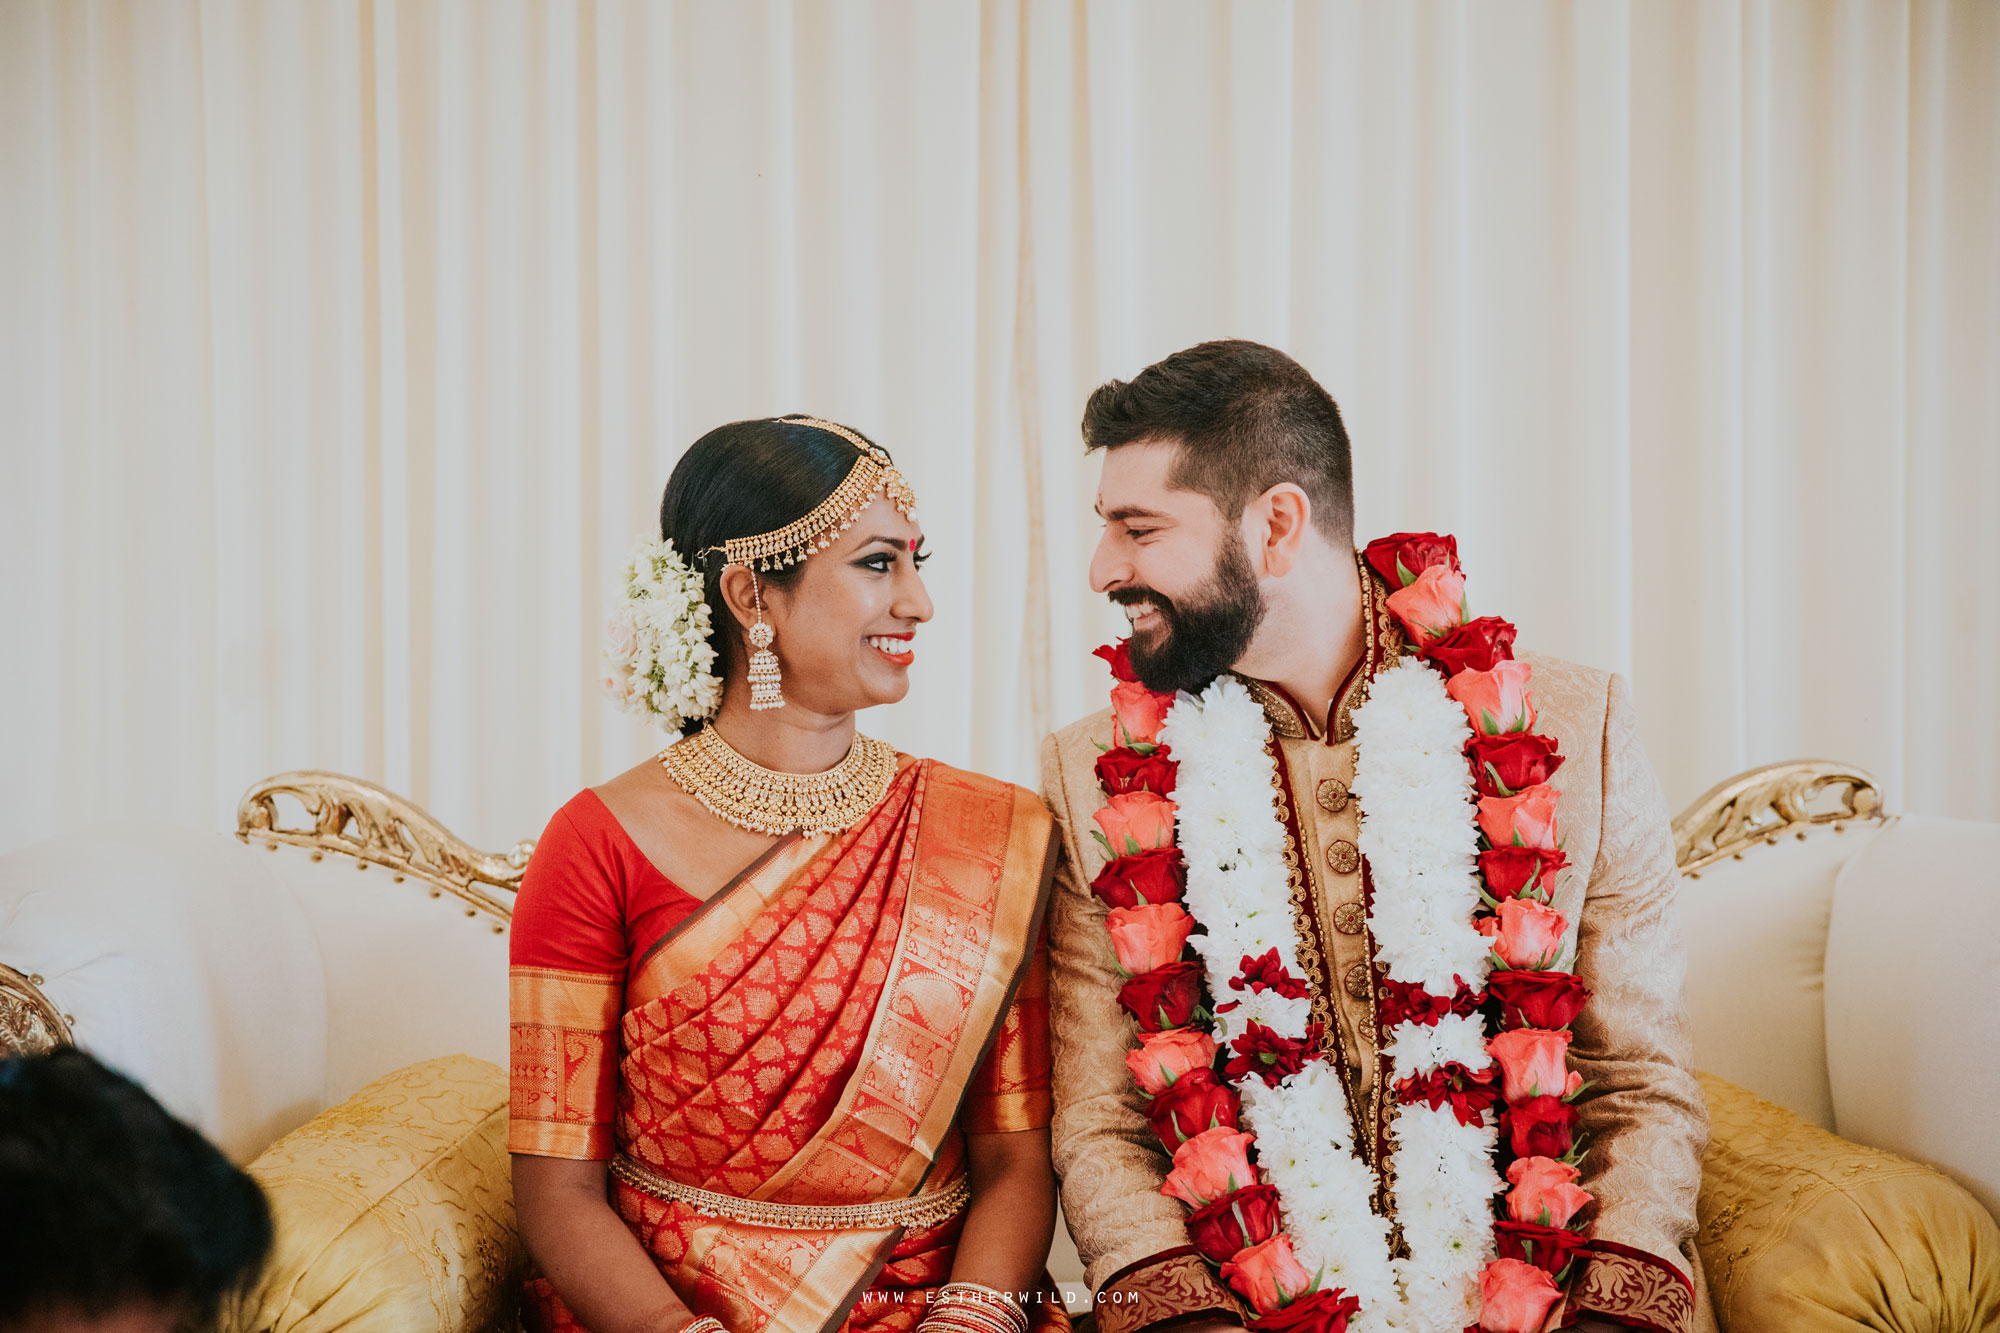 Northbrook_Park_Farnham_Surrey_London_Wedding_Hindu_Fusion_Esther_Wild_Photographer_IMG_4422.jpg